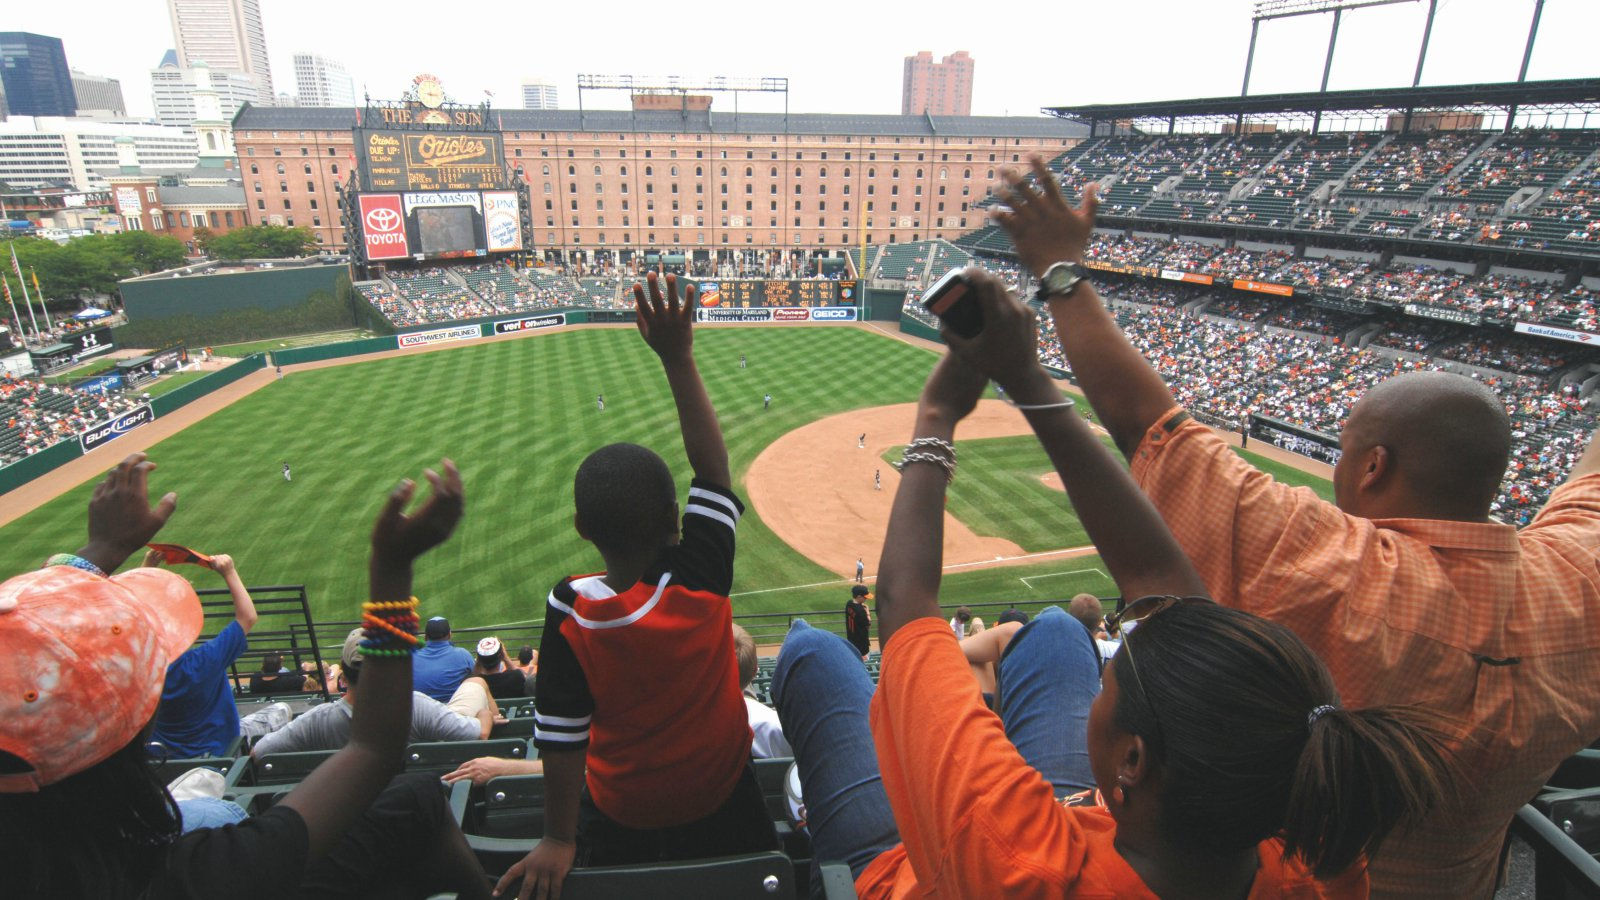 Sheraton Baltimore North Hotel - Oriole Park at Camden Yards